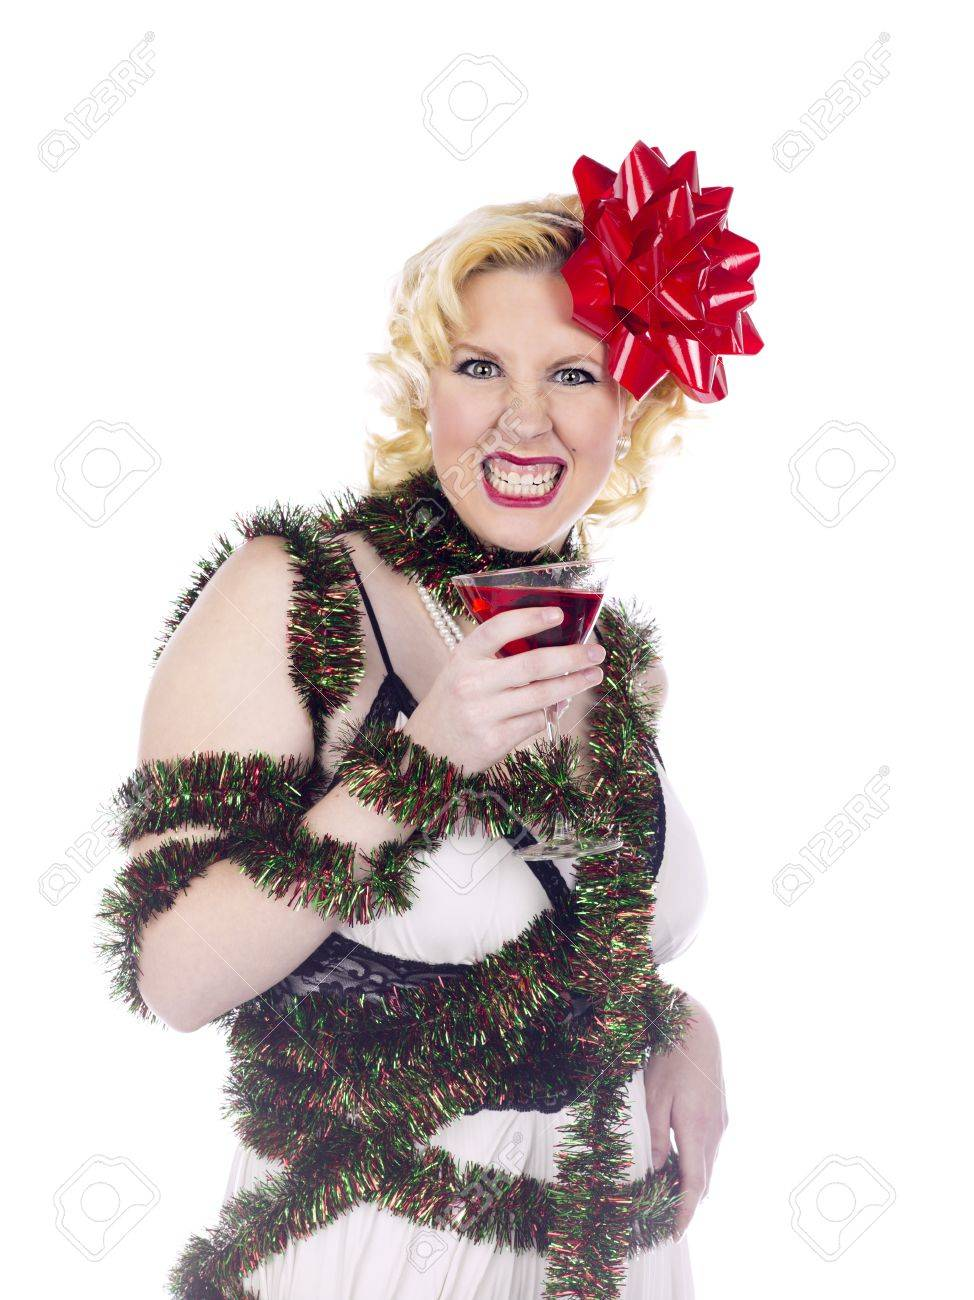 Woman draped in Christmas decorations and holding a martini glass makes a funny face on white Stock Photo - 16973898